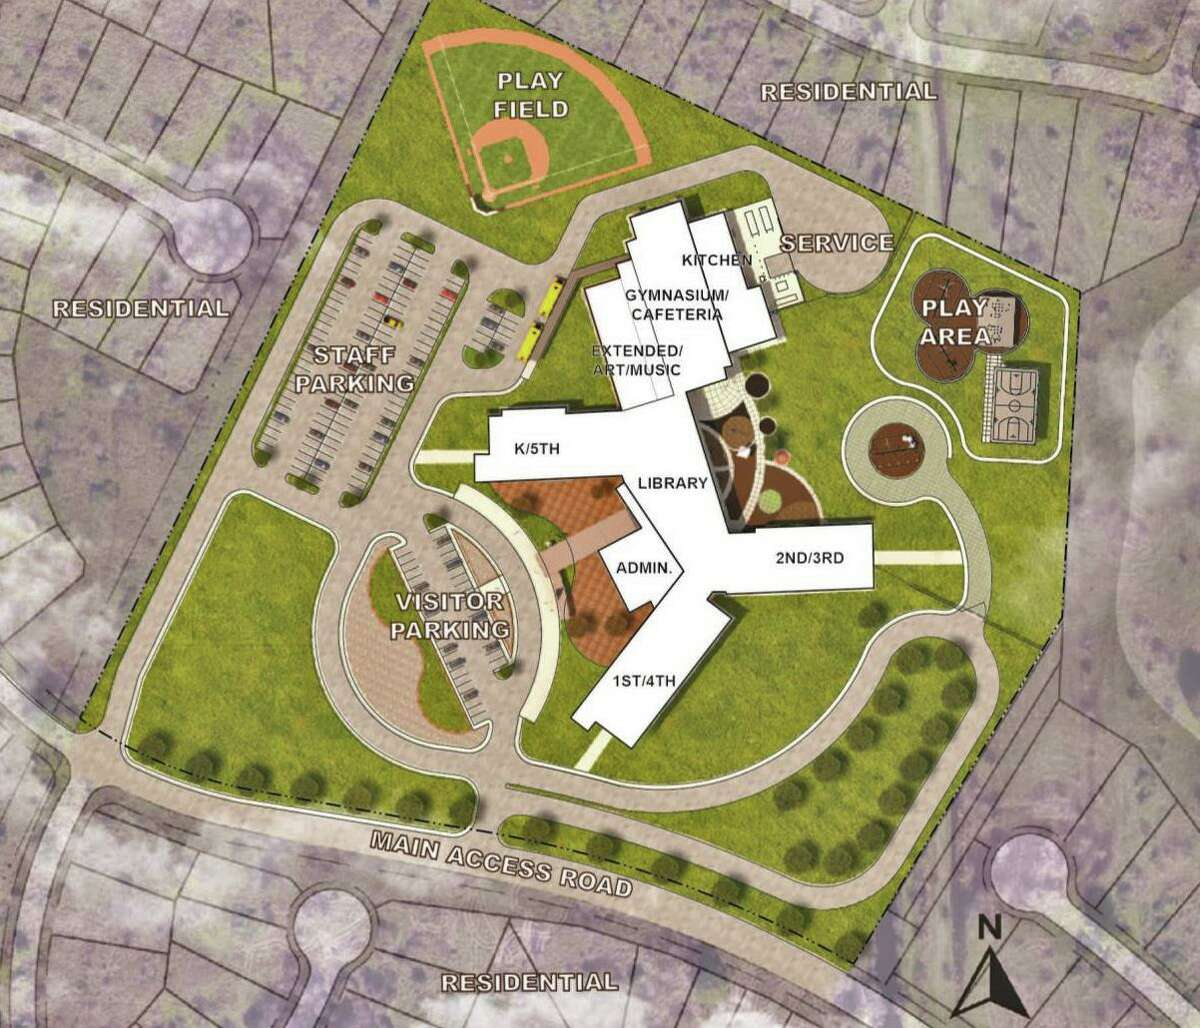 The school will have a 1,000-student capacity and will alleviate potential overcrowding classroom at Palmer Elementary School, Fort Bend ISD officials said.